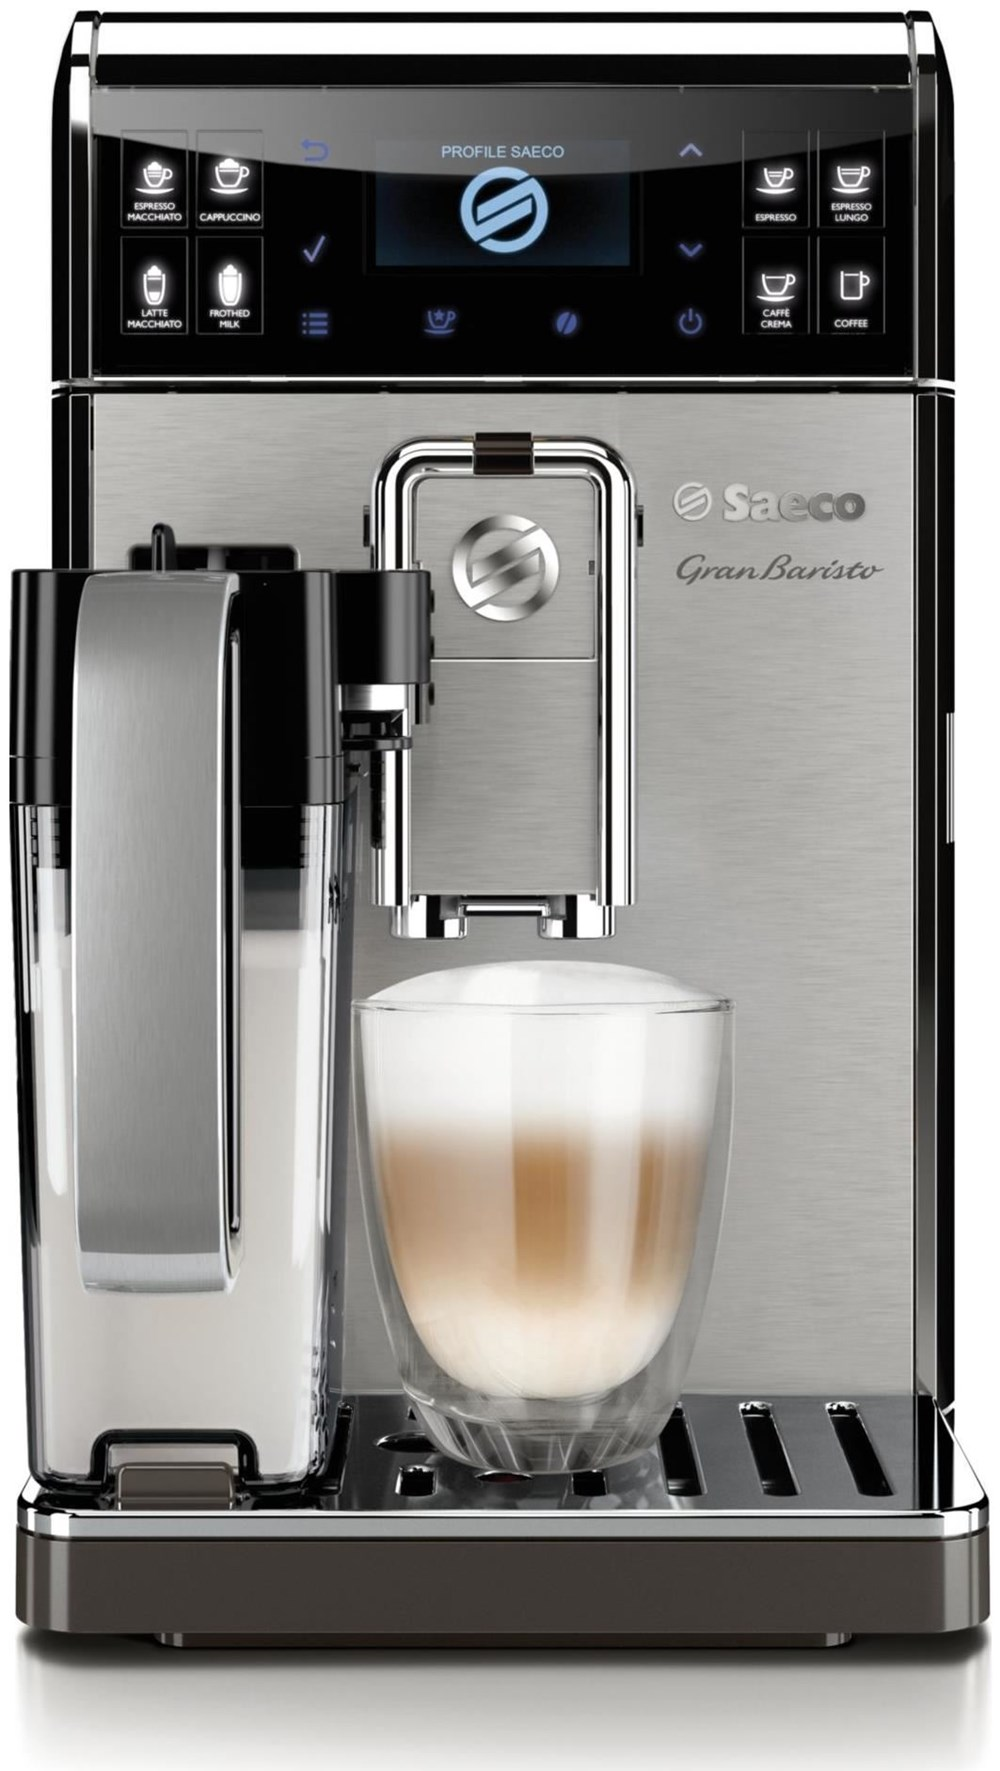 Philips Coffee Maker Bean To Cup : Philips Saeco HD8975/01 GranBaristo schwarz / silber - Bean-to-Cup Coffee Machines ...